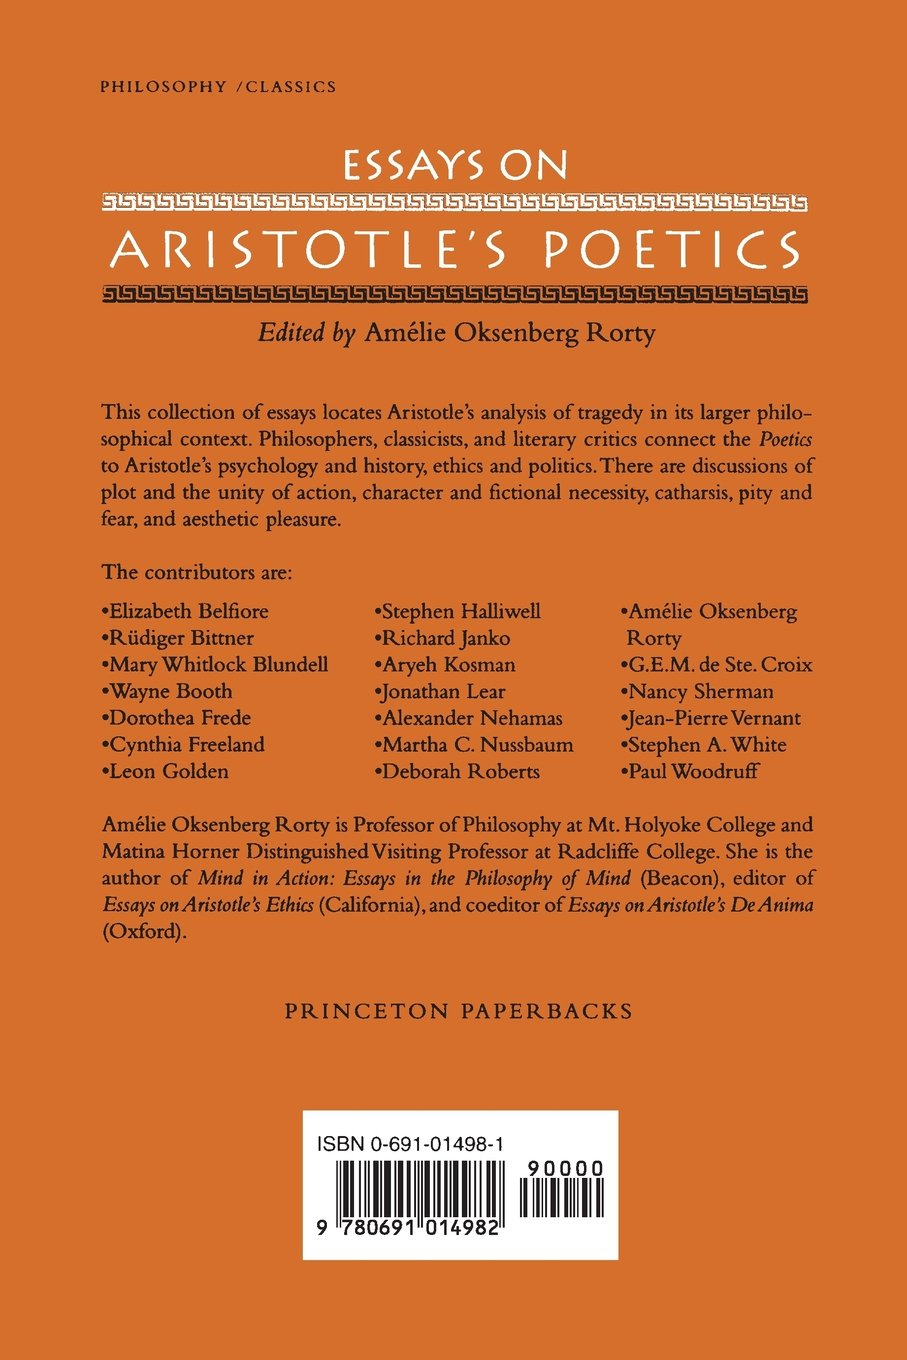 com essays on aristotle s poetics am atilde copy lie com essays on aristotle s poetics 9780691014982 amatildecopylie oksenberg rorty books